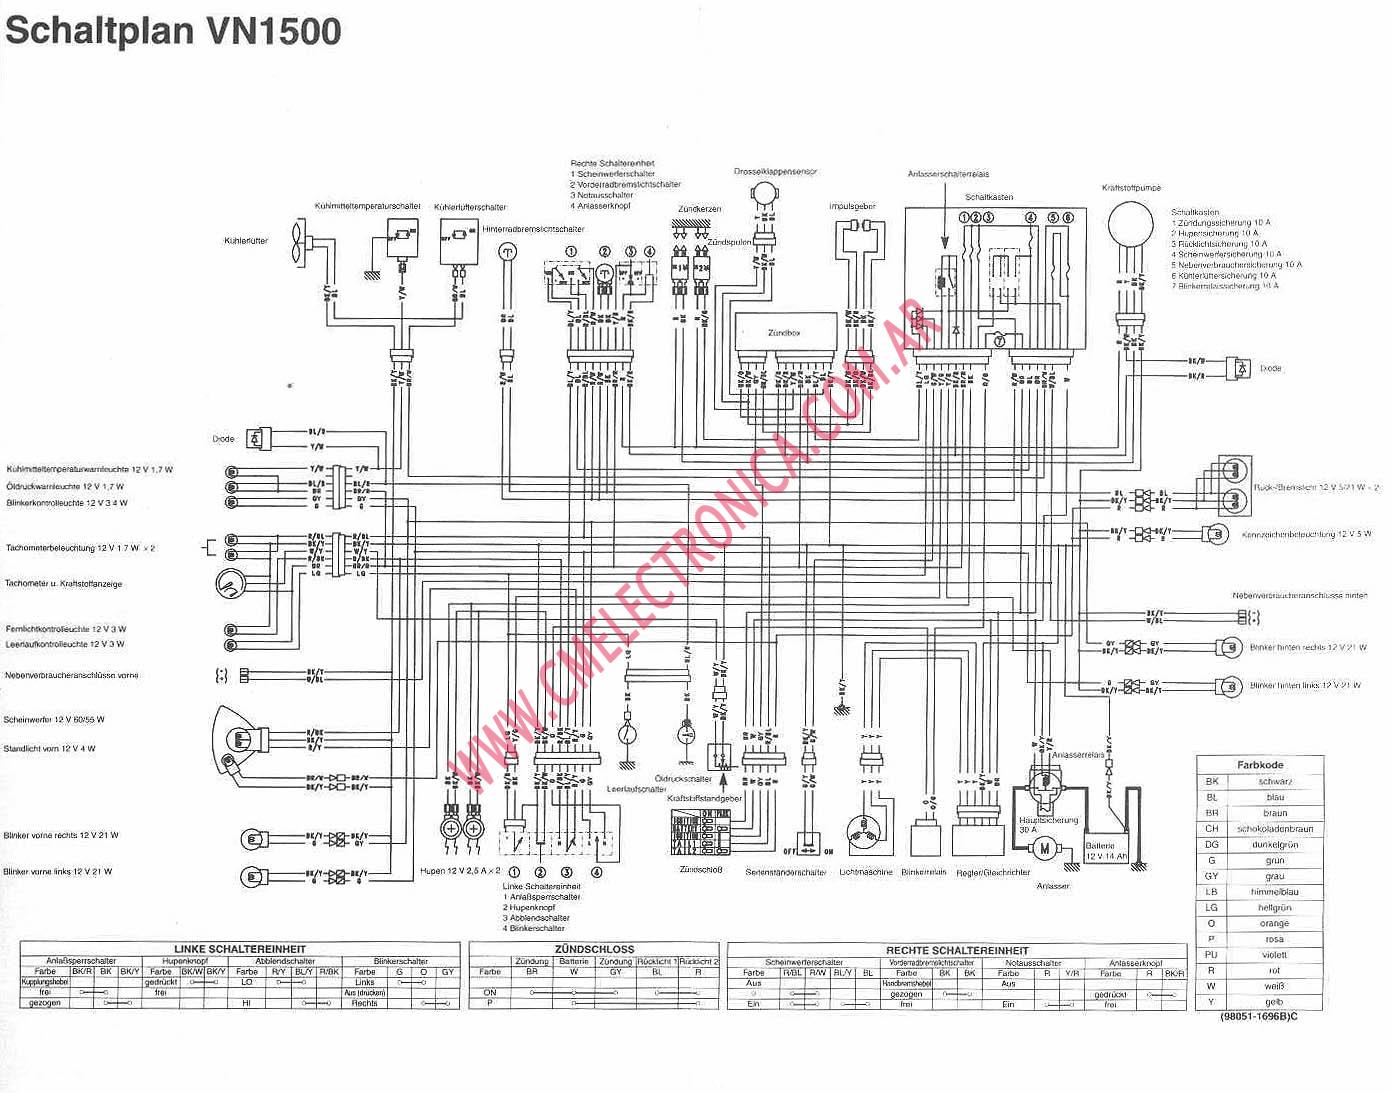 Ab Powerflex 755 Wiring Diagram further Midland Base Station Mic Wiring Diagrams further Rockwell Wiring Diagram Pdf besides Ab 700pk400a1 Wiring Diagram also Gravely 160z Wiring Diagram. on powerflex 755 wiring diagrams